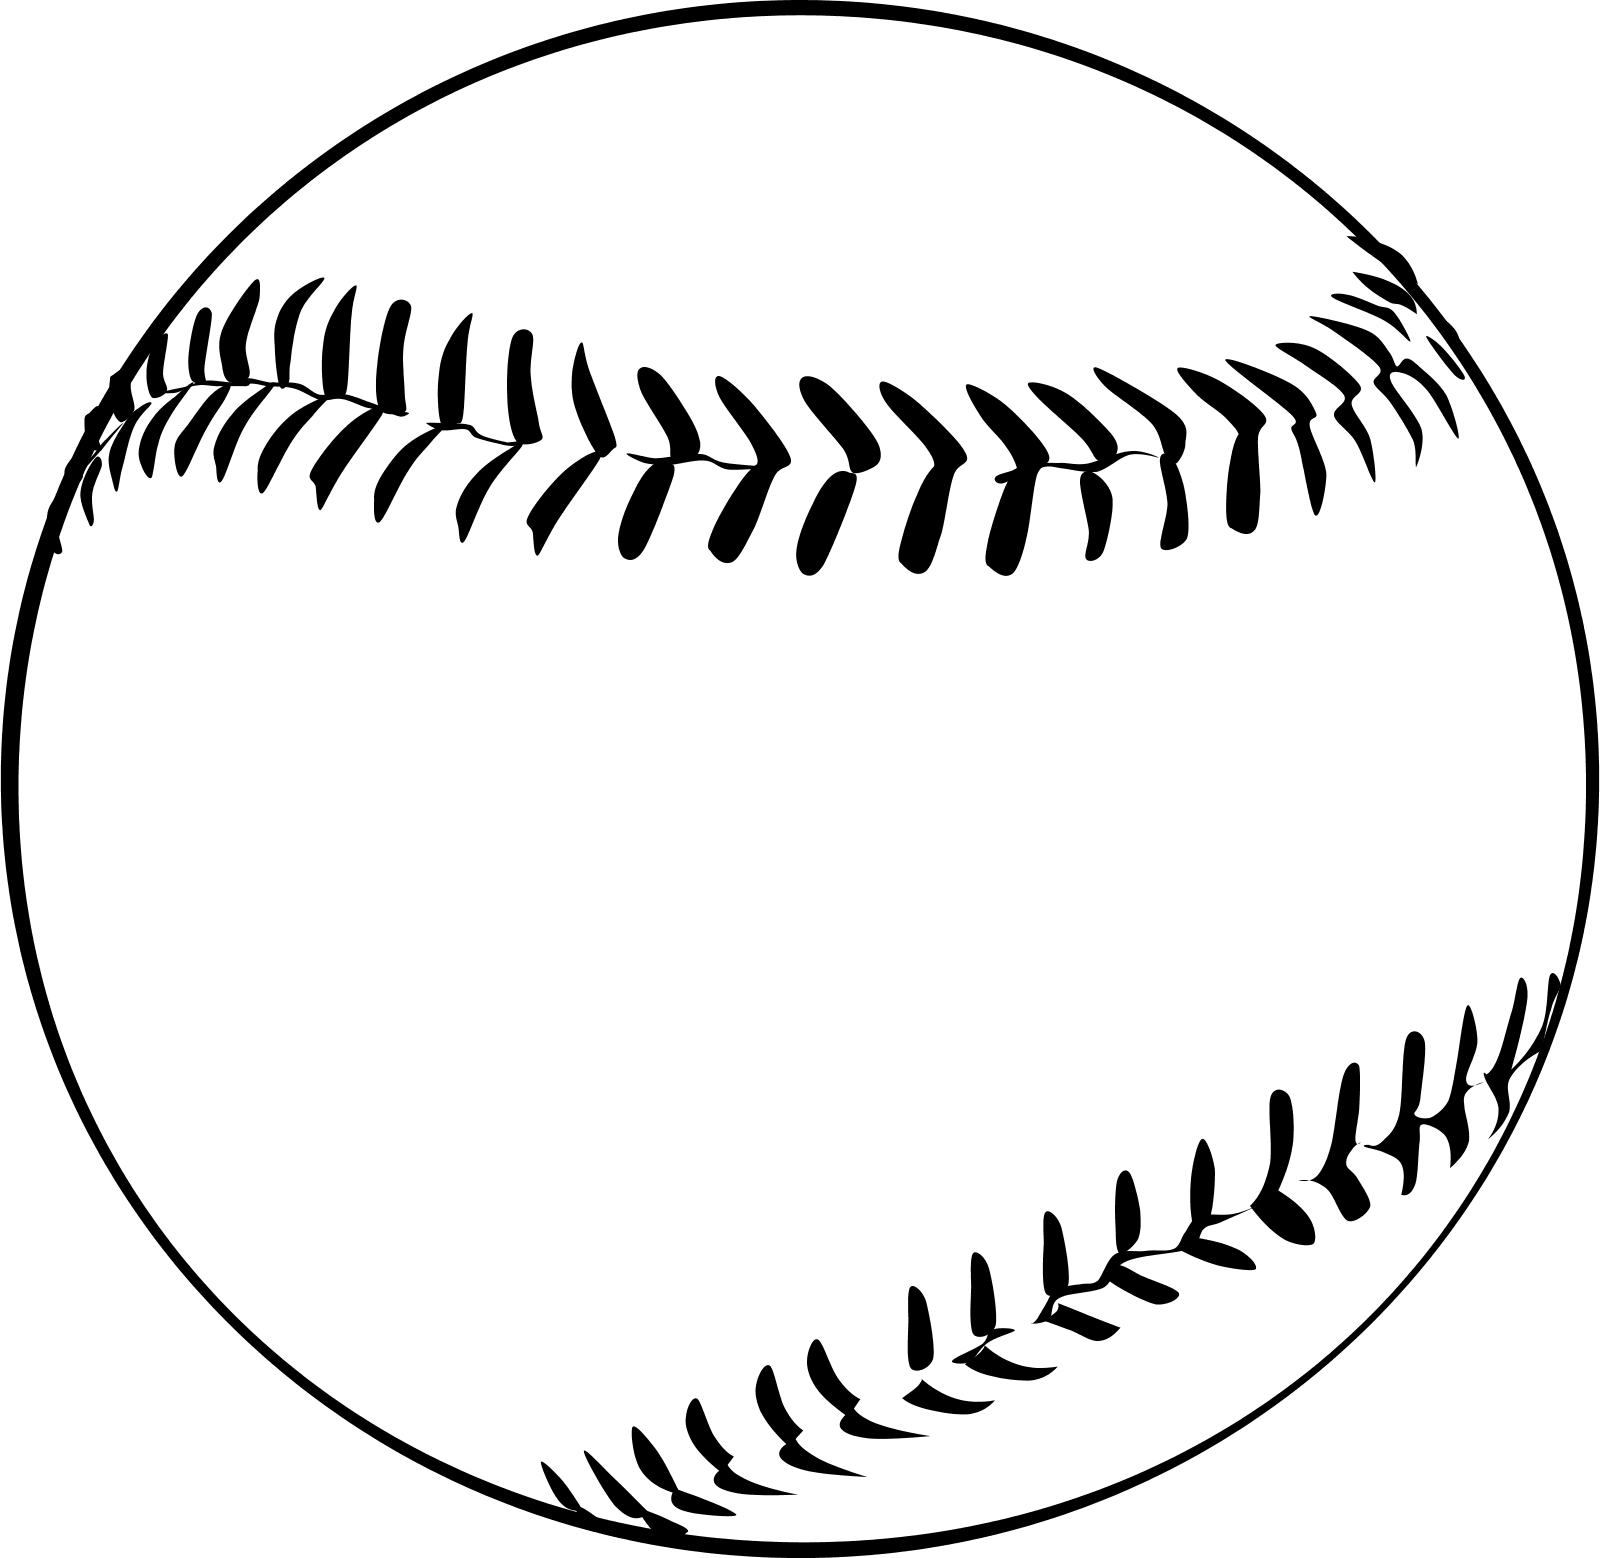 Baseball free clipart picture library 28+ Collection of Baseball Clipart Png | High quality, free cliparts ... picture library